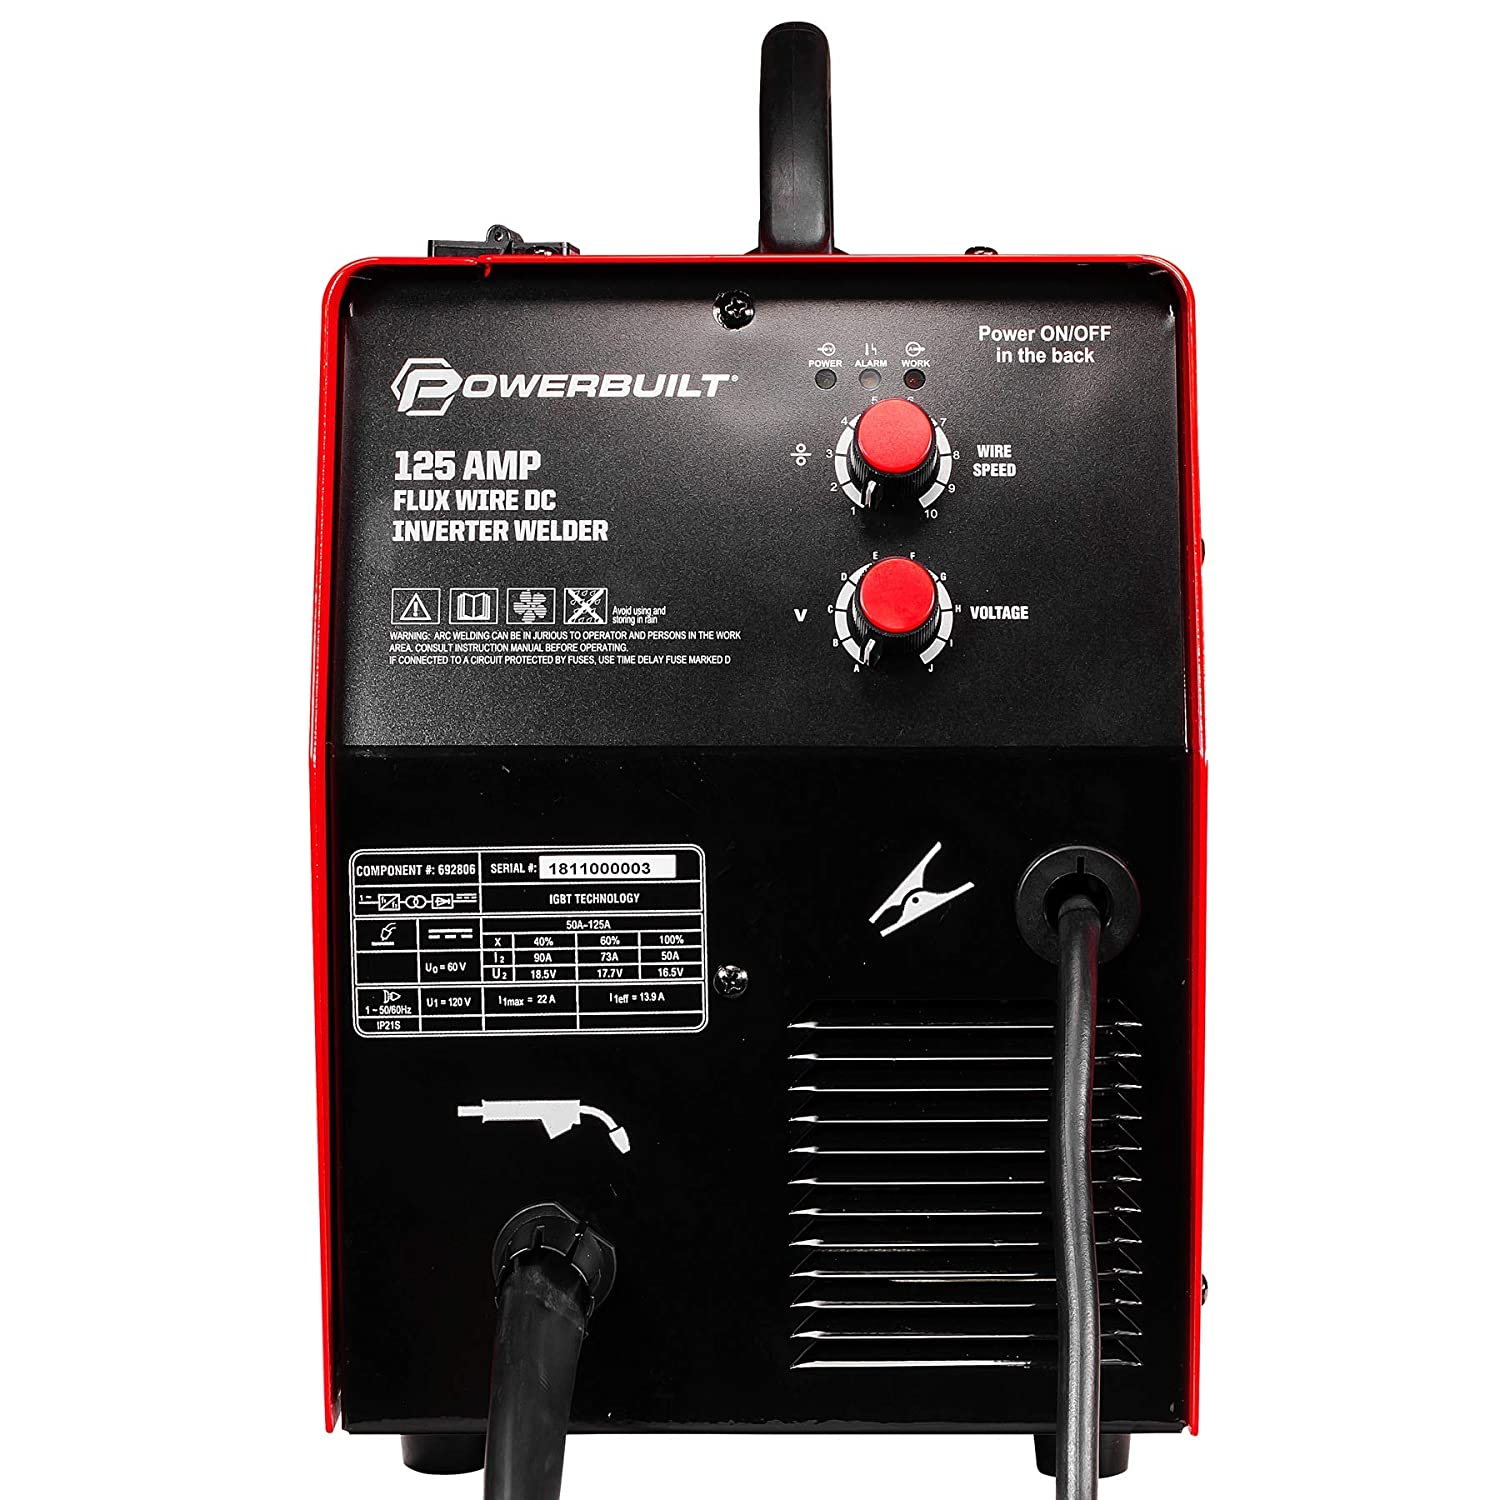 Powerbuilt 125A Portable IGBT Inverter Wire Feed MIG Flux Welder - 240131 - - Amazon.com